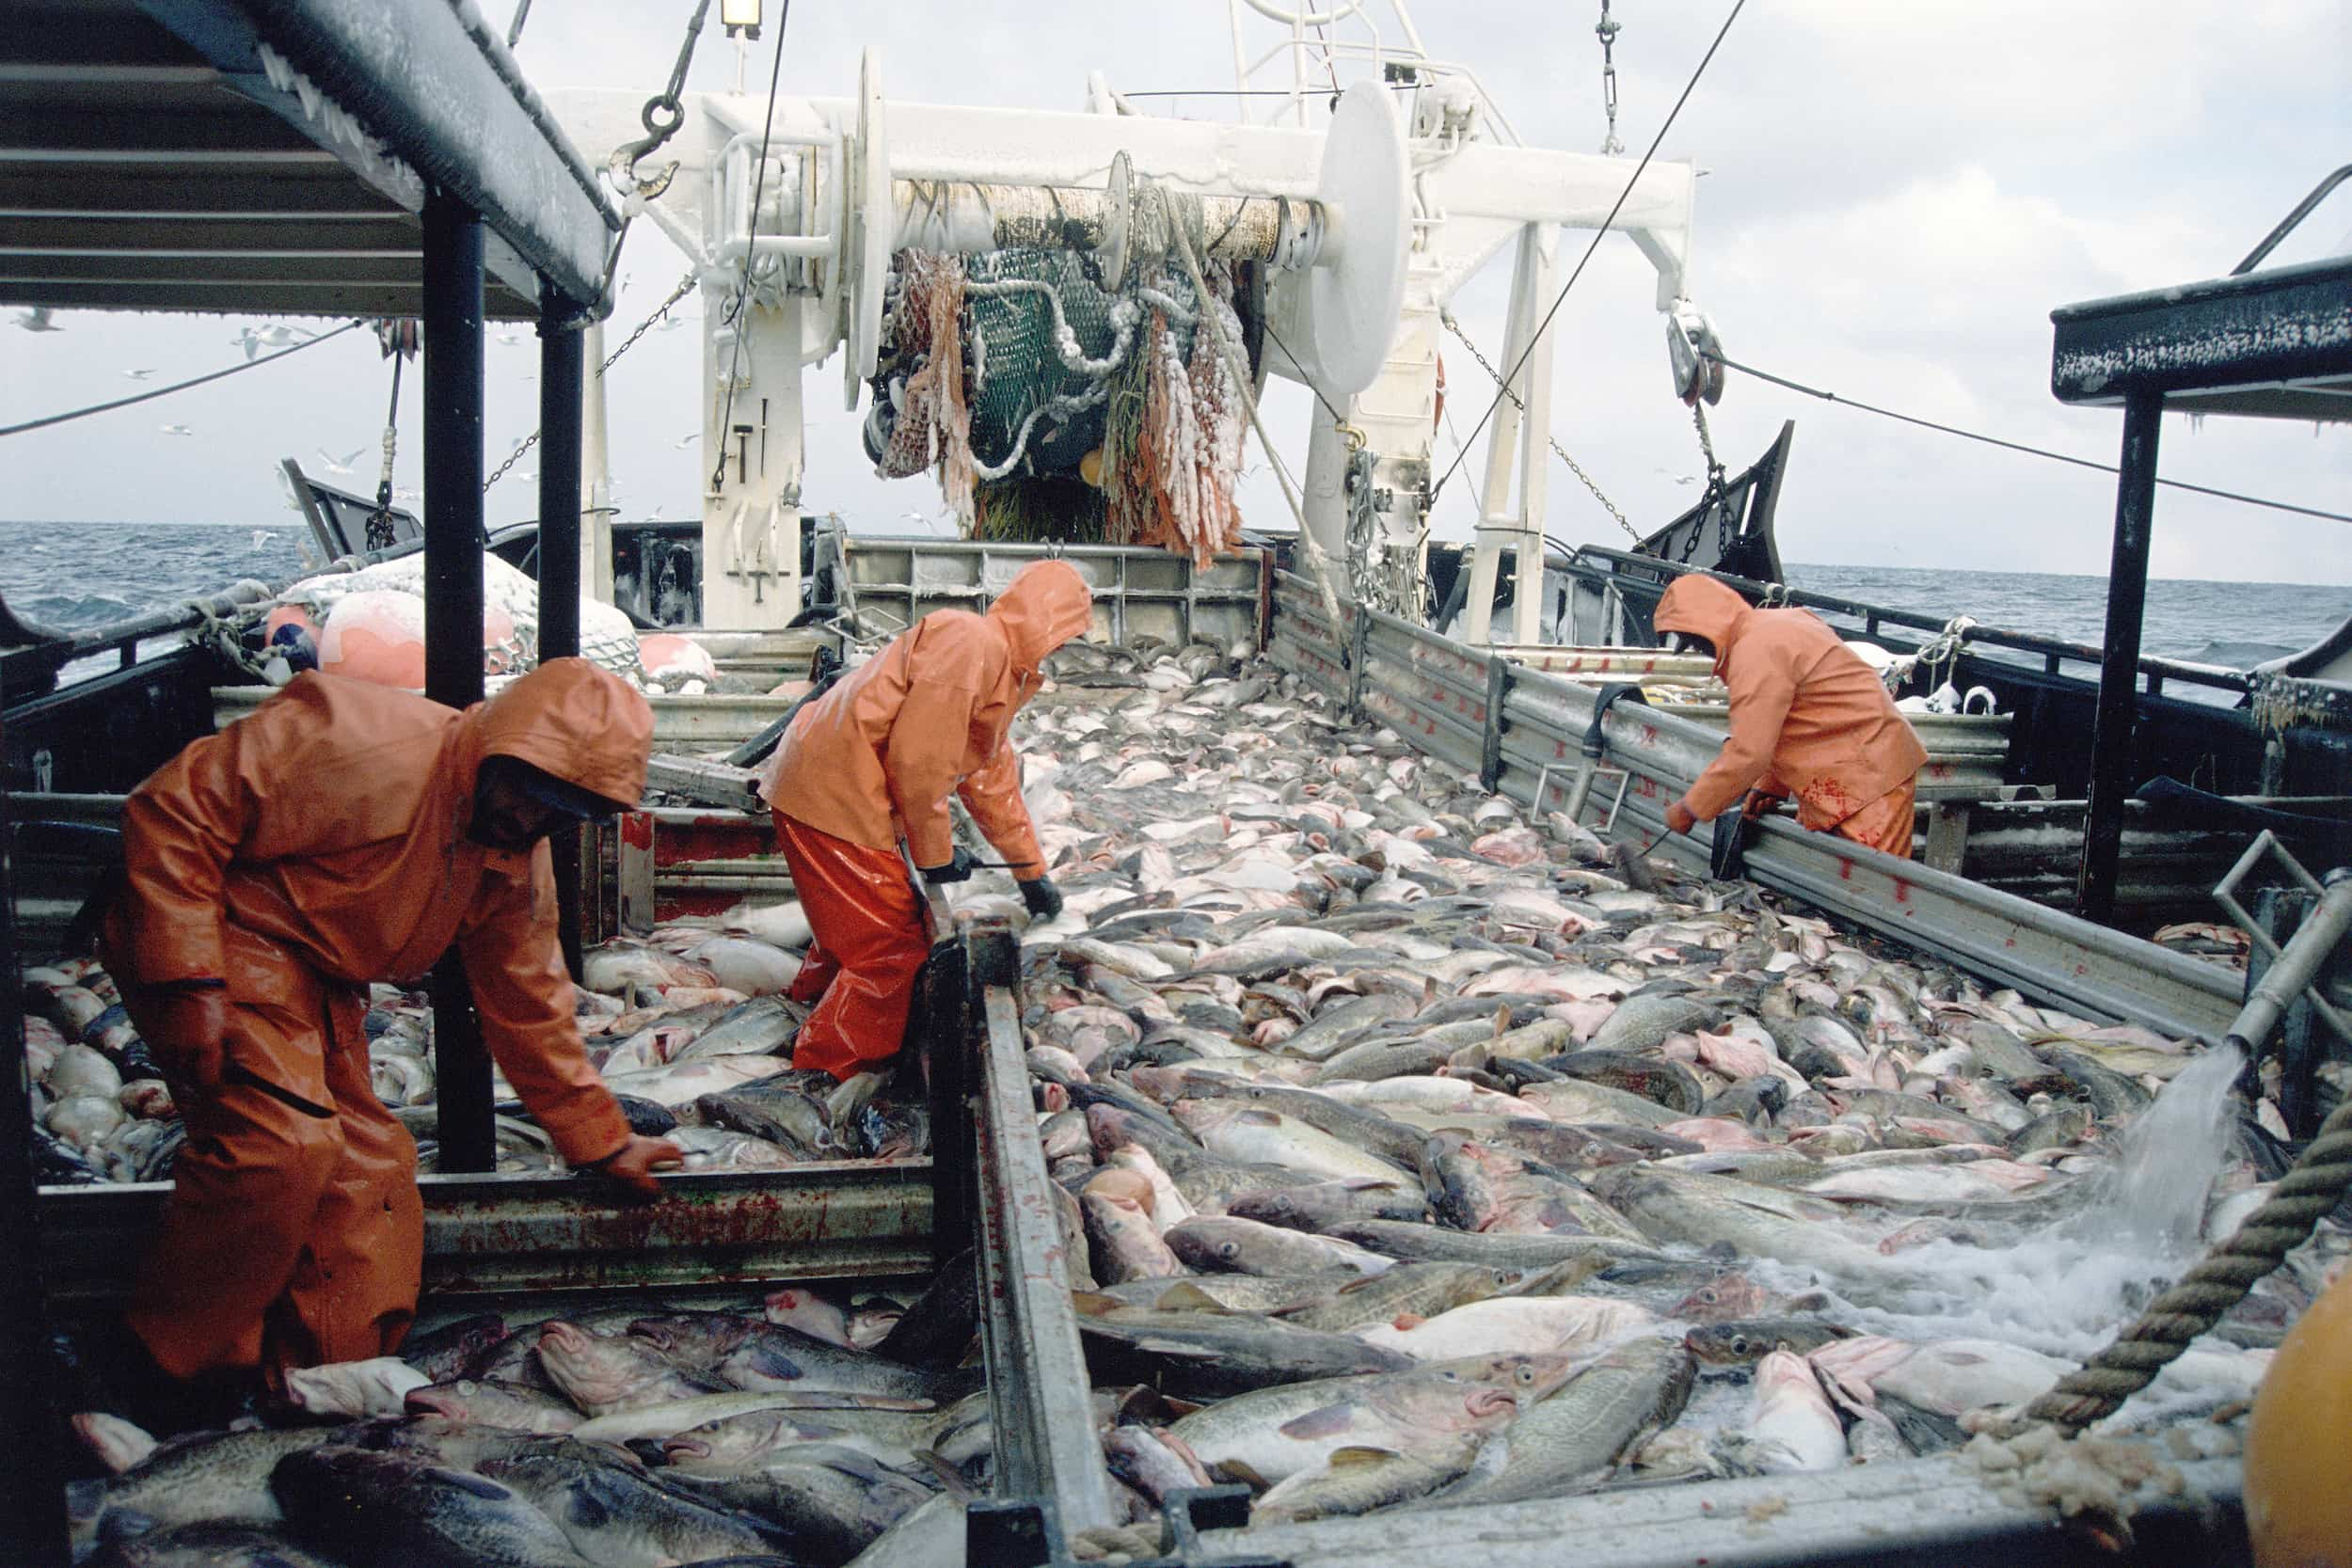 Commercial Fisherman Processing a Catch of Pacific Rock Cod, Gulf of Alaska